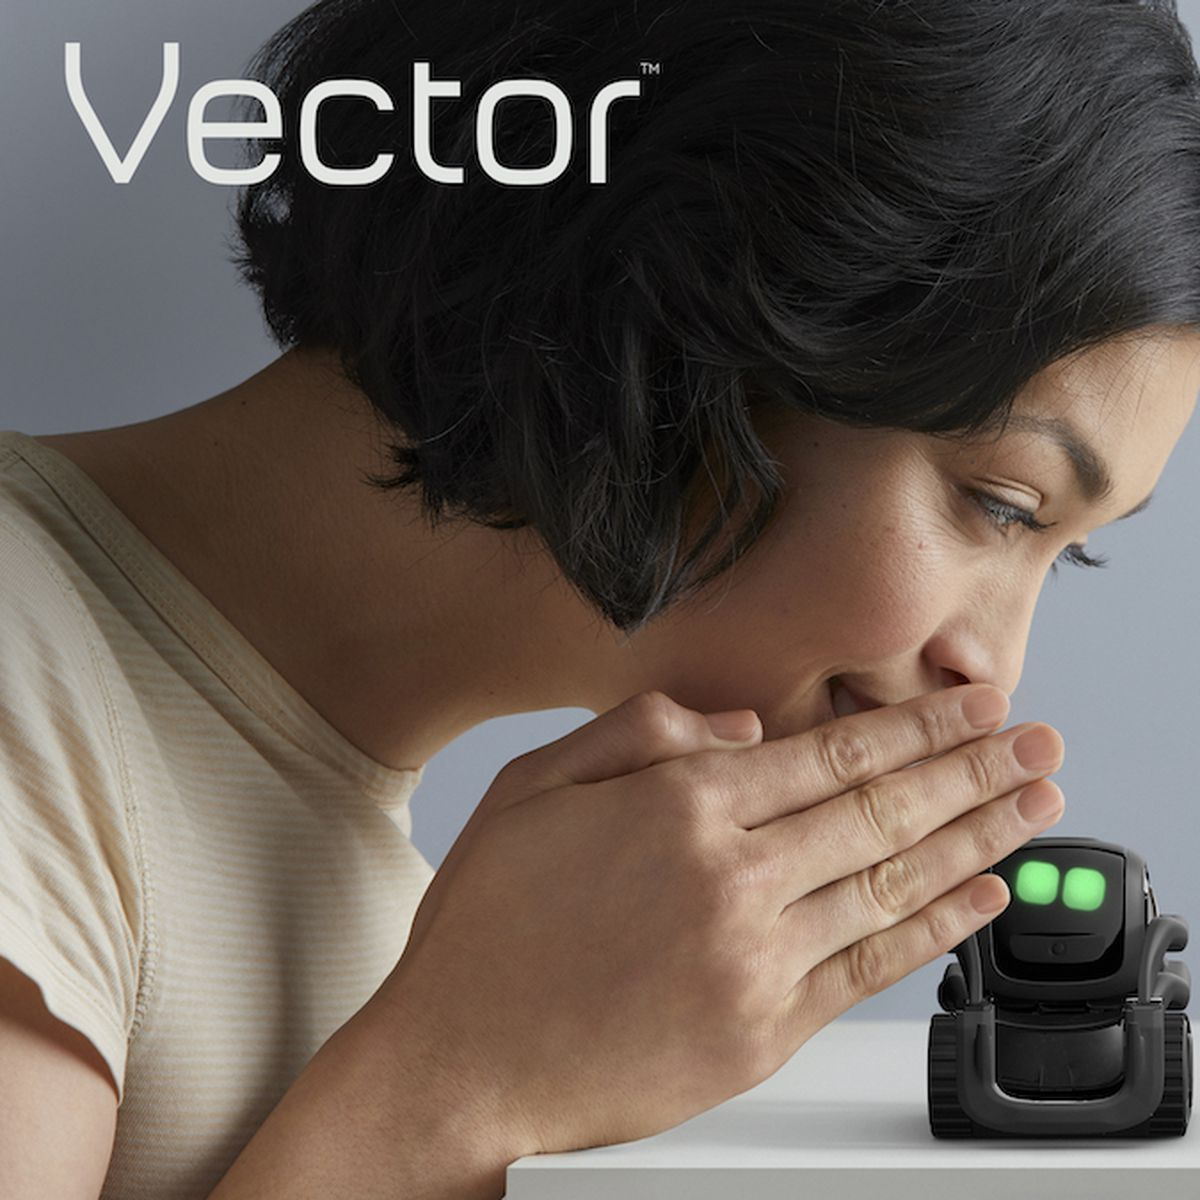 Anki Reveals Autonomous 'Vector' Home Robot With AI Learning to ...